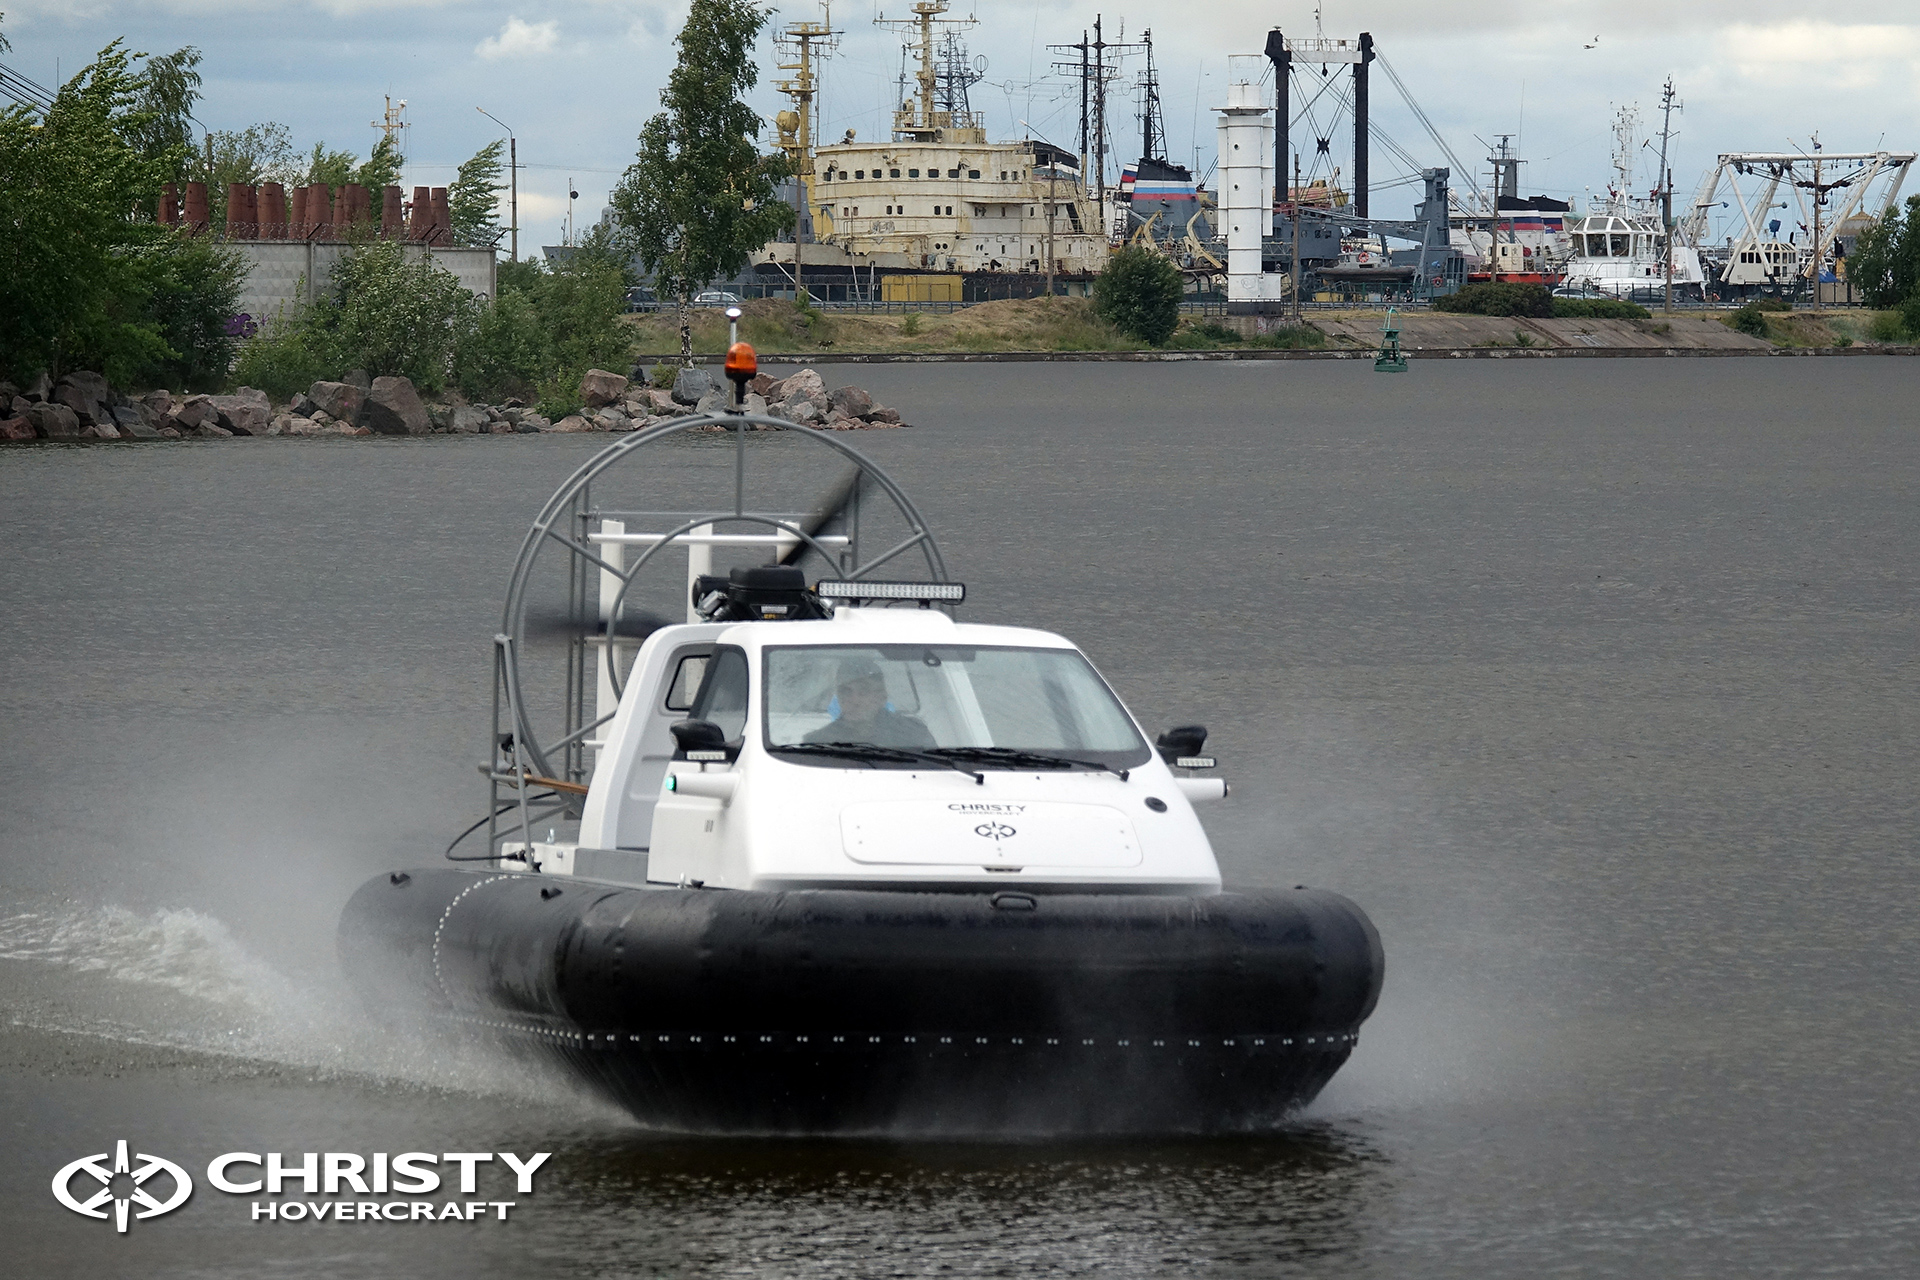 Hovercraft Christy 463 PC in Storm 290618 15.jpg | фото №13